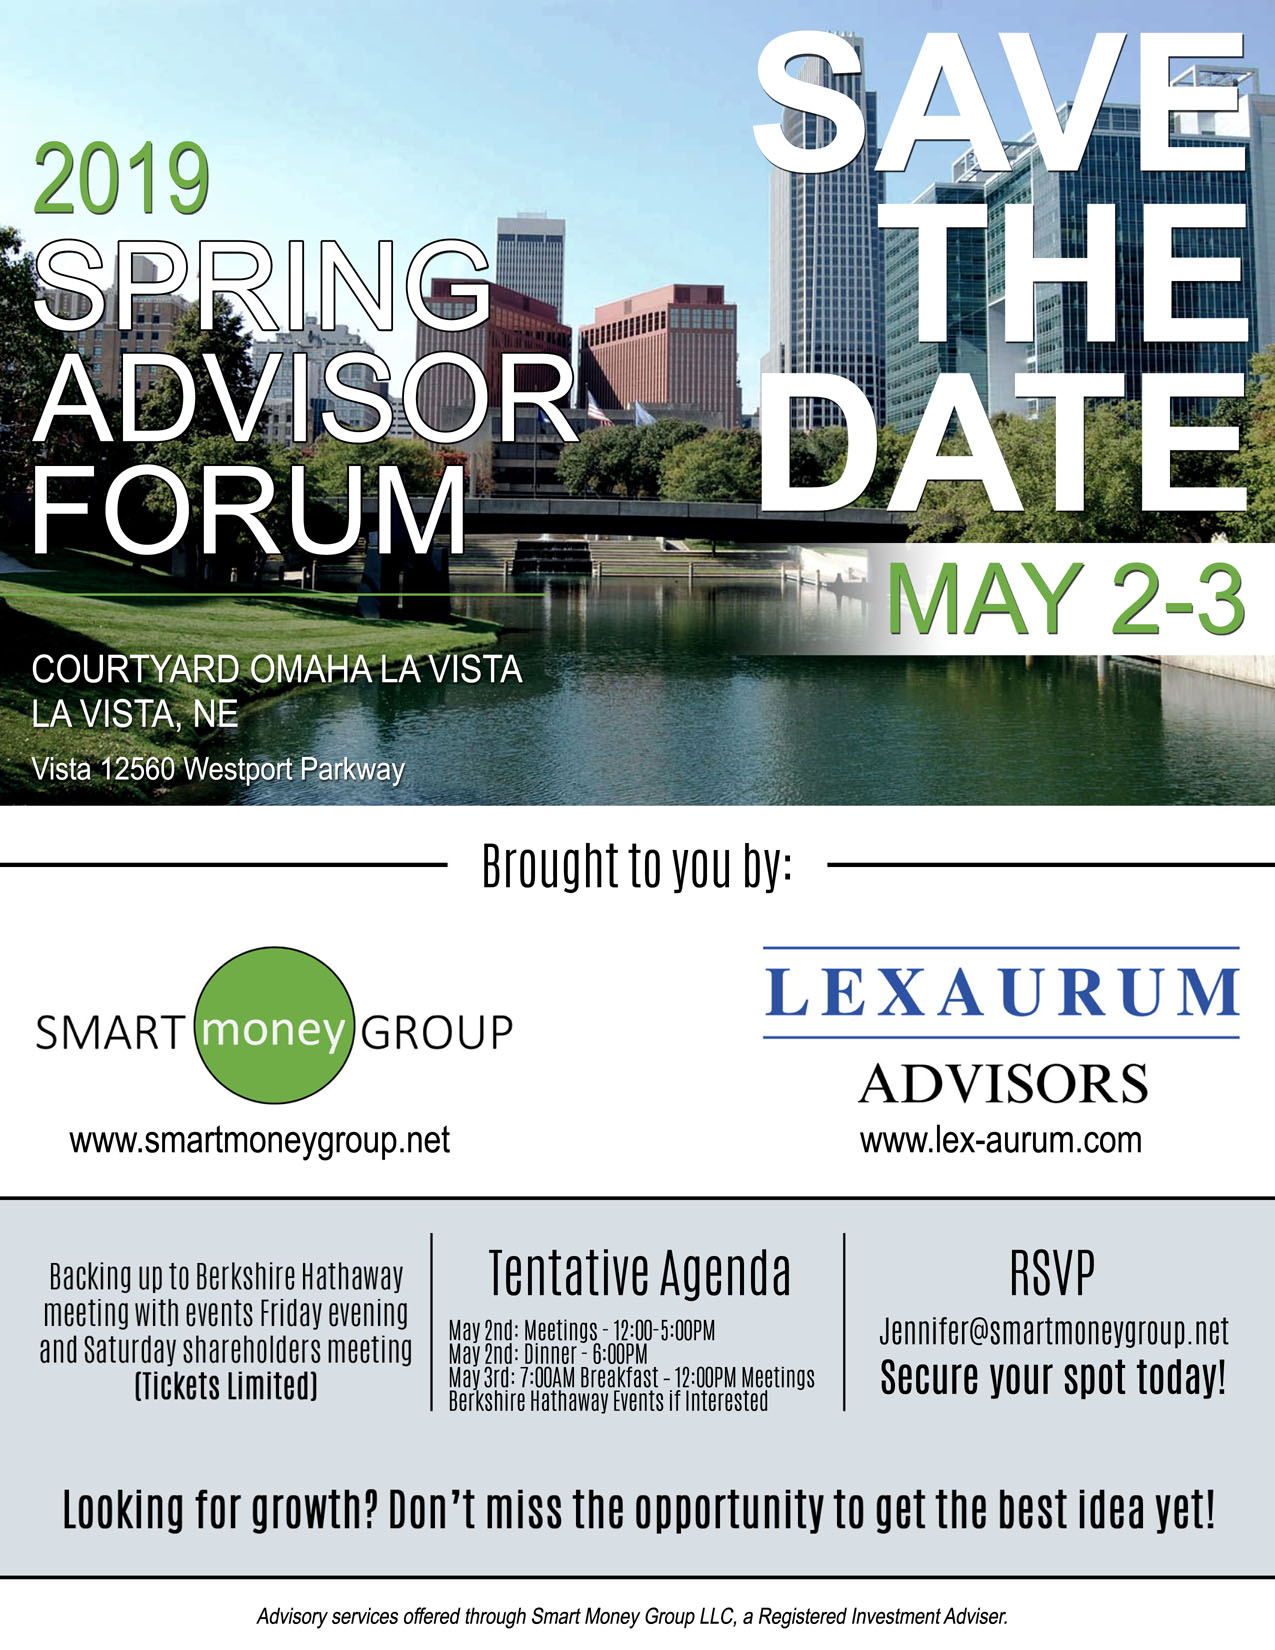 SMG Forum Save the Date